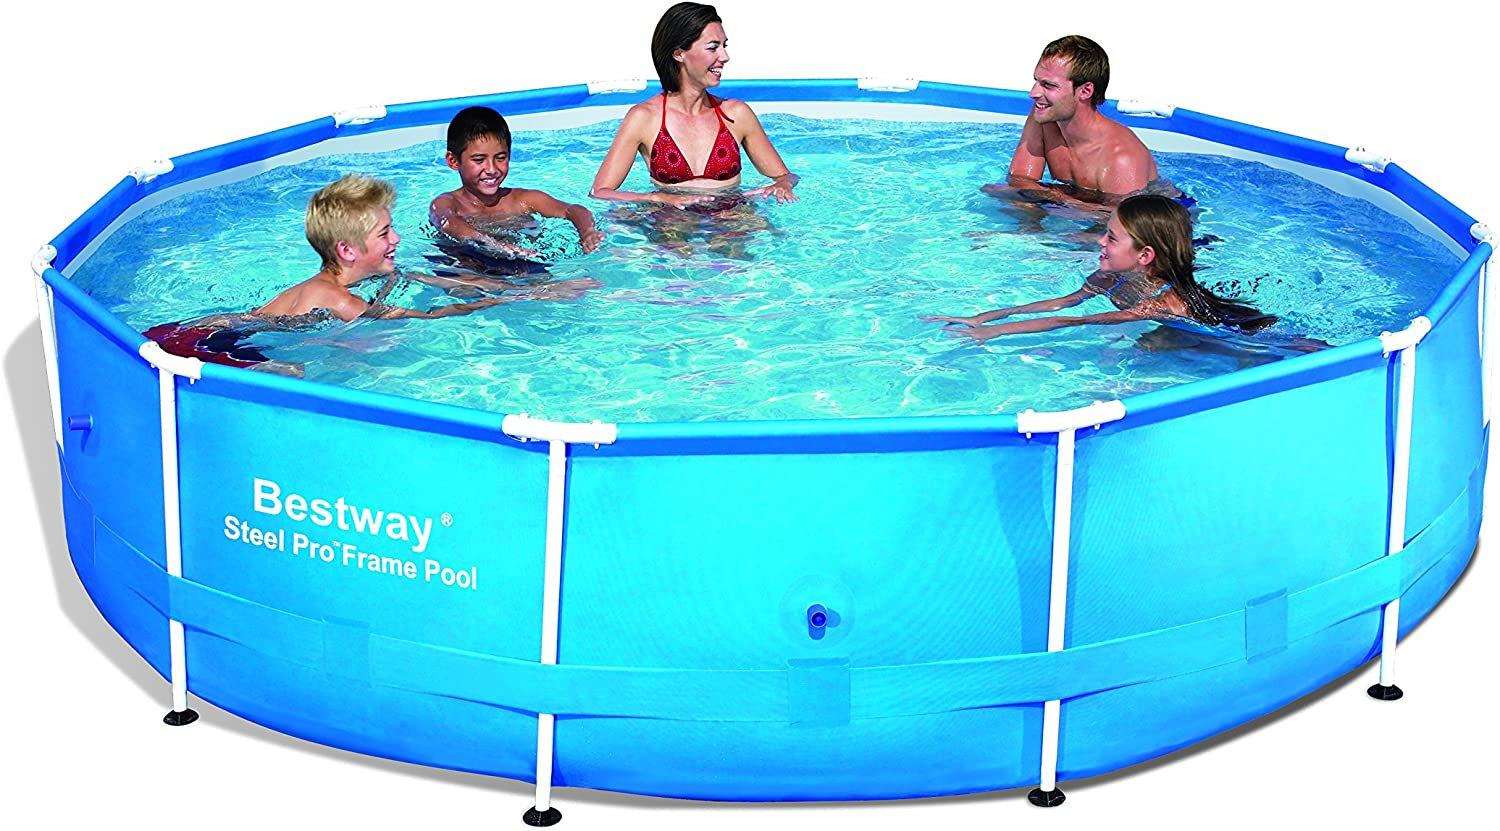 Bestway Steel Pro - Piscina, 366 x 76 cm: Amazon.es: Jardín